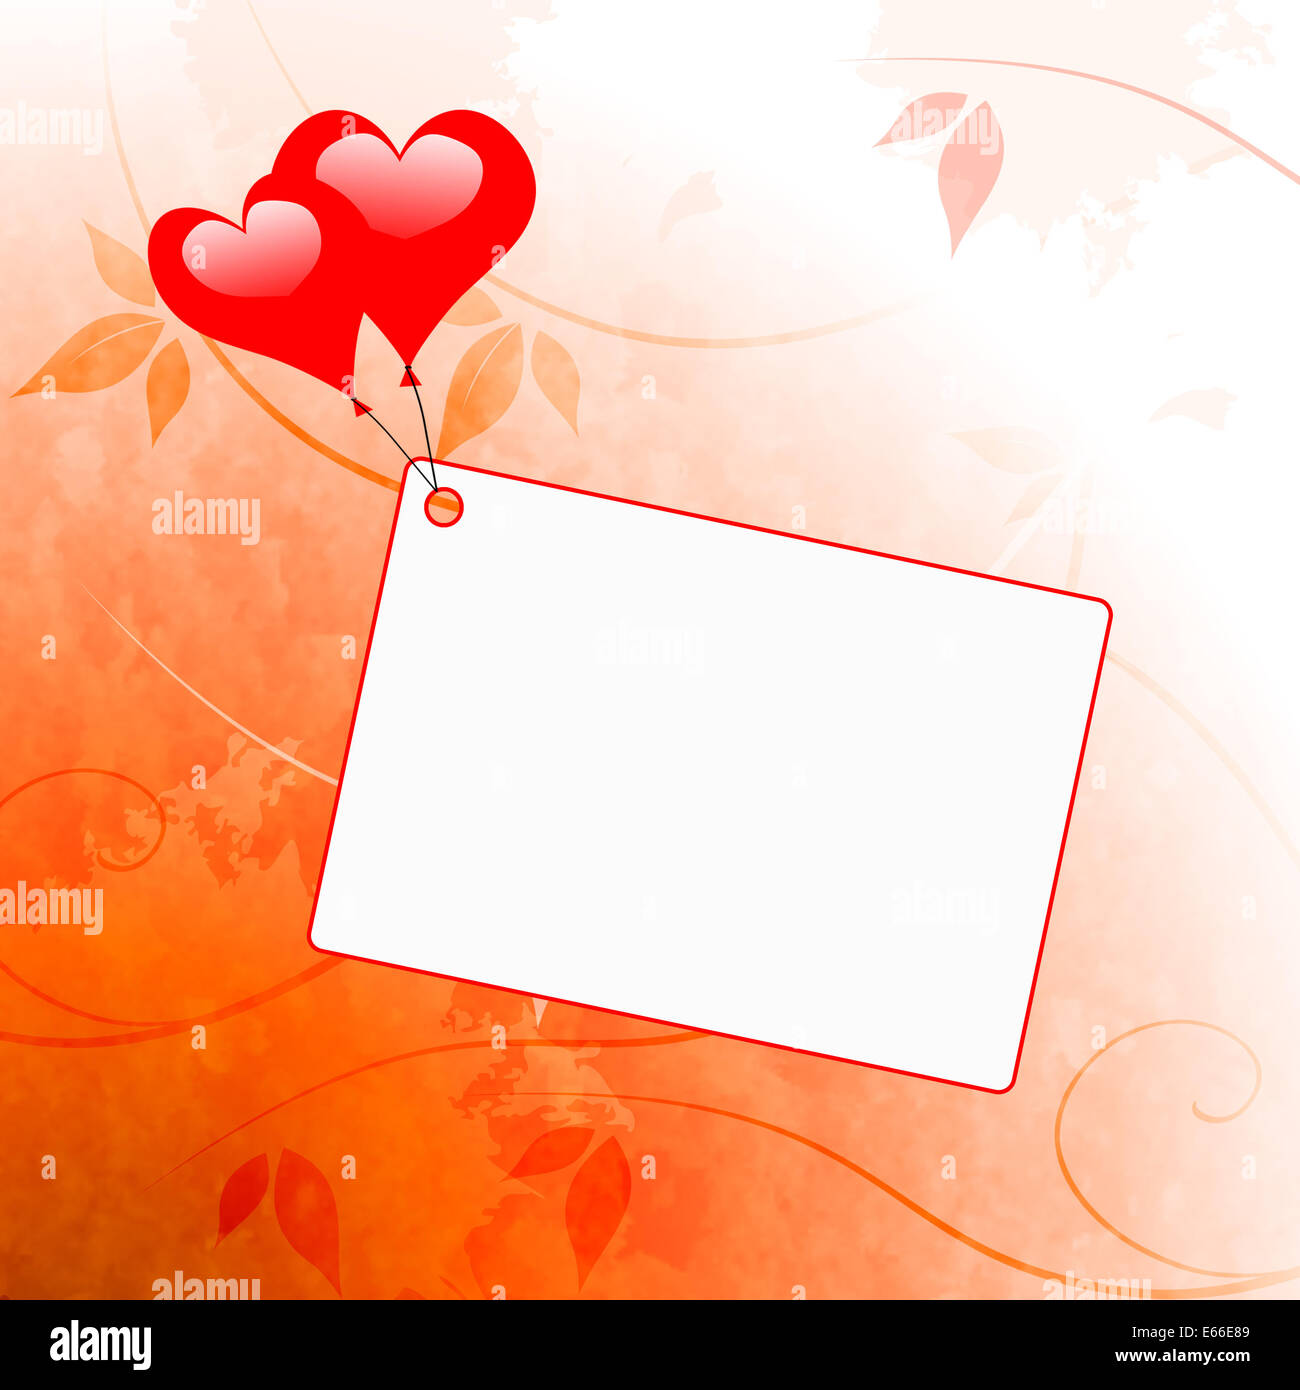 Heart Balloons On Note Meaning Wedding Invitation Or Love Letter